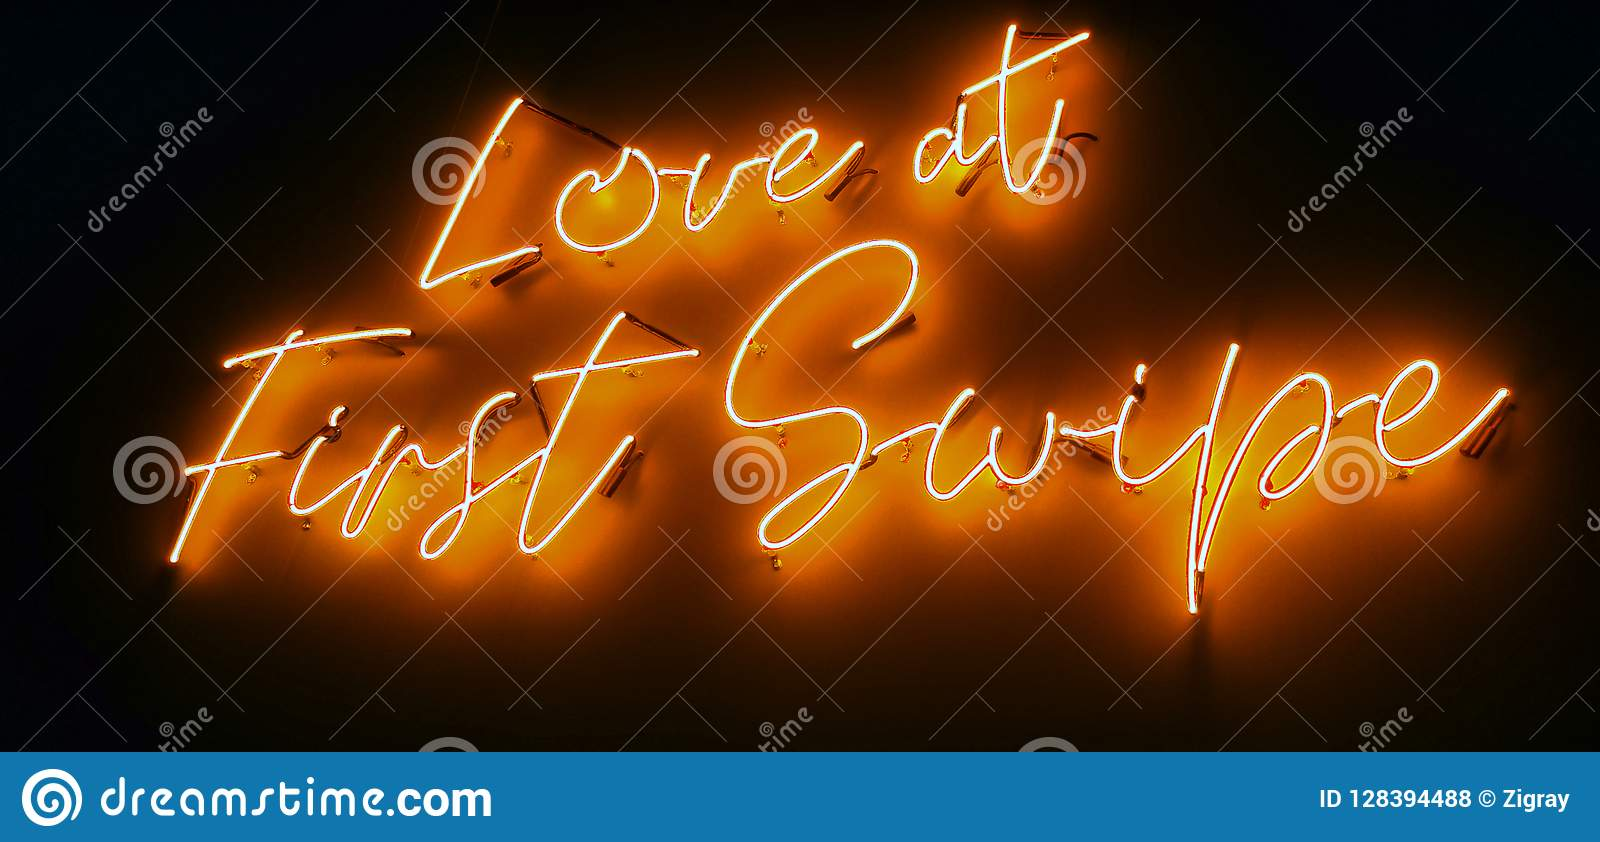 slogans for online dating sites